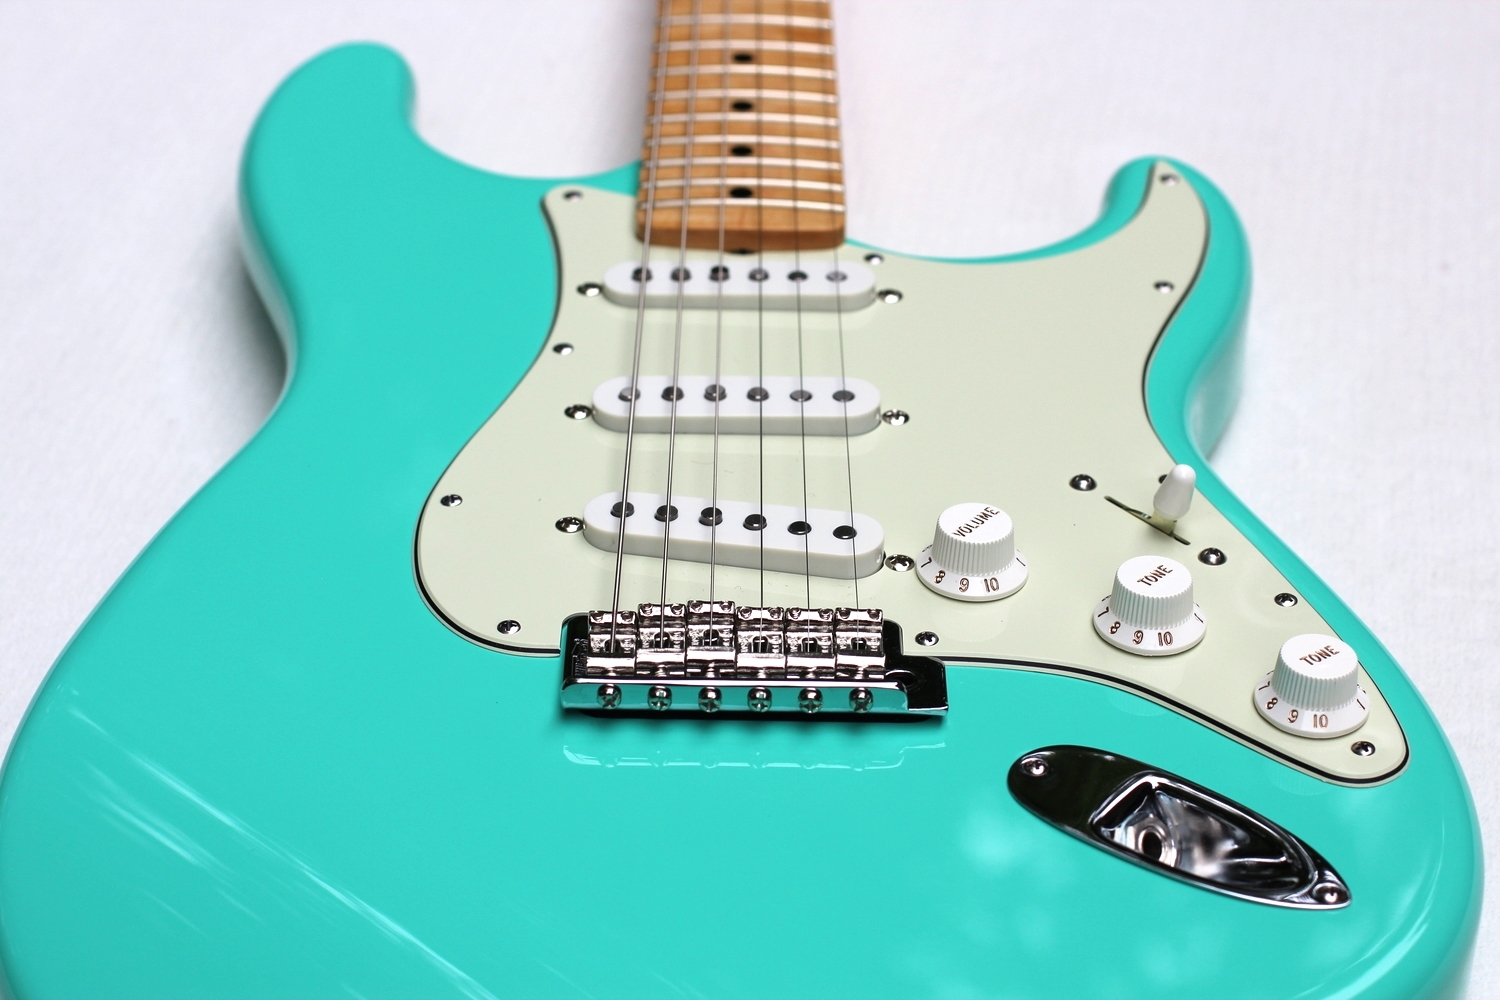 Seafoam Green S-Type - Tone for Days!